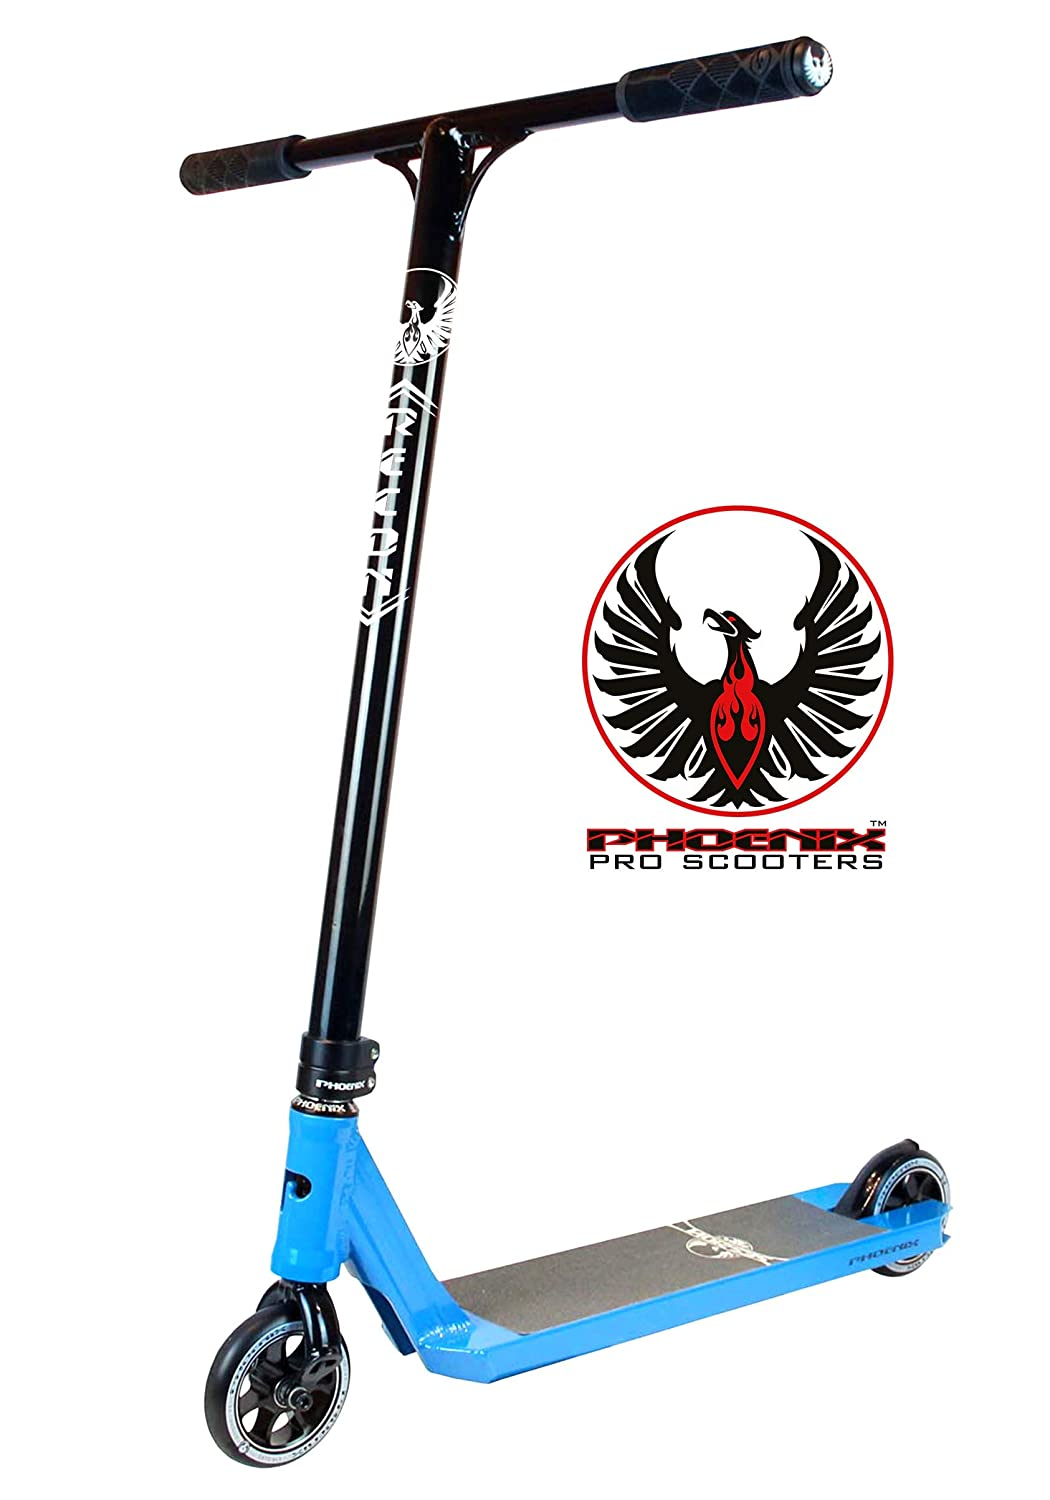 Phoenix Integrated Pro Scooter Session Complete - 4.5 x 20 Black/Teal Brand New Complete Phoenix Pro Scooters 917511